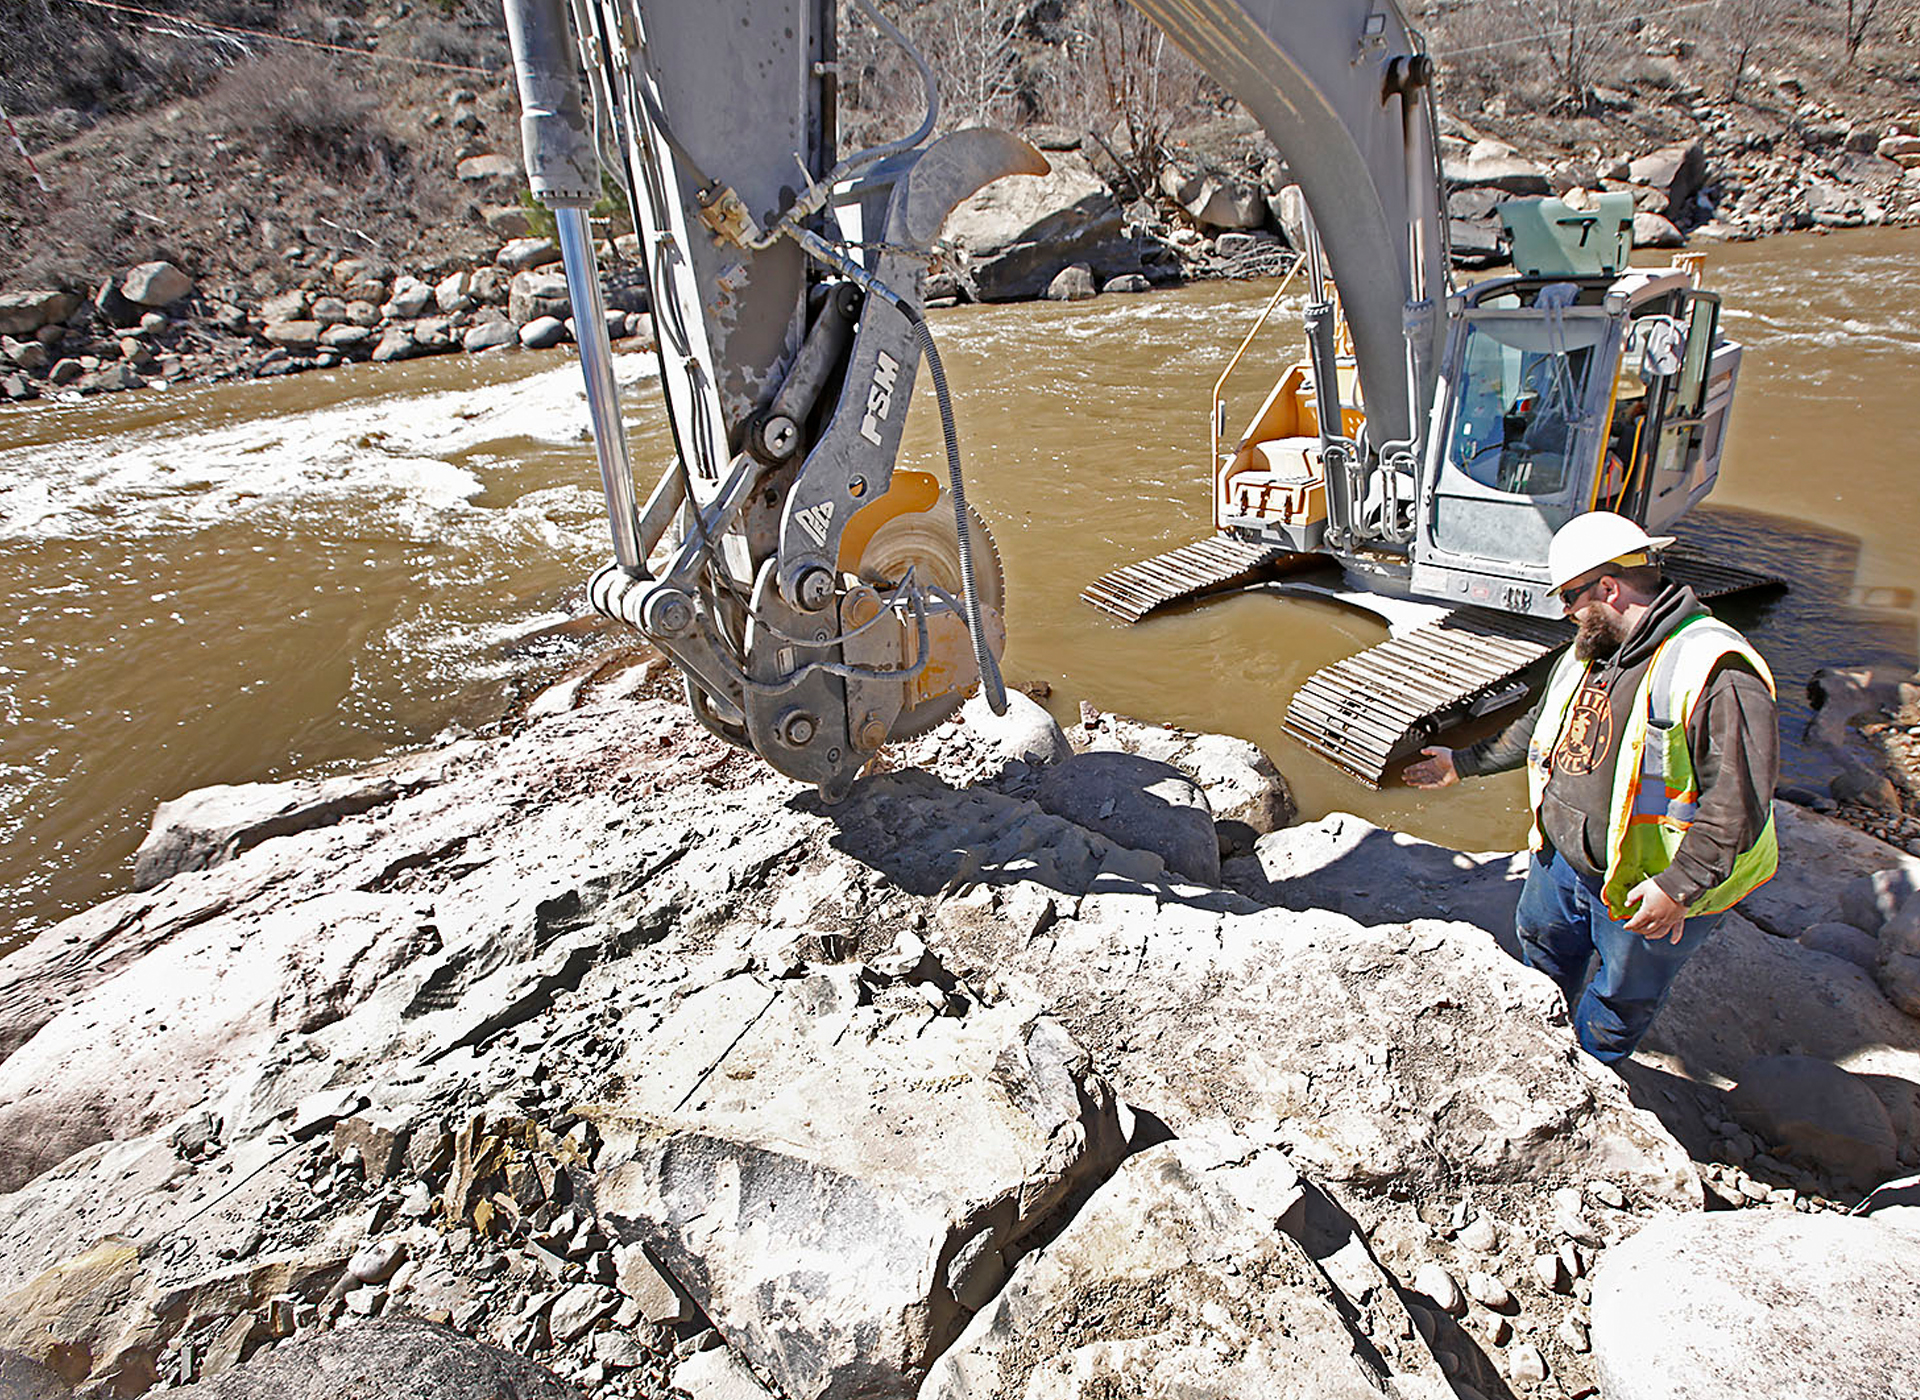 Volvo excavator saws through rock with percision at Durango Whitewater Park in Colorado